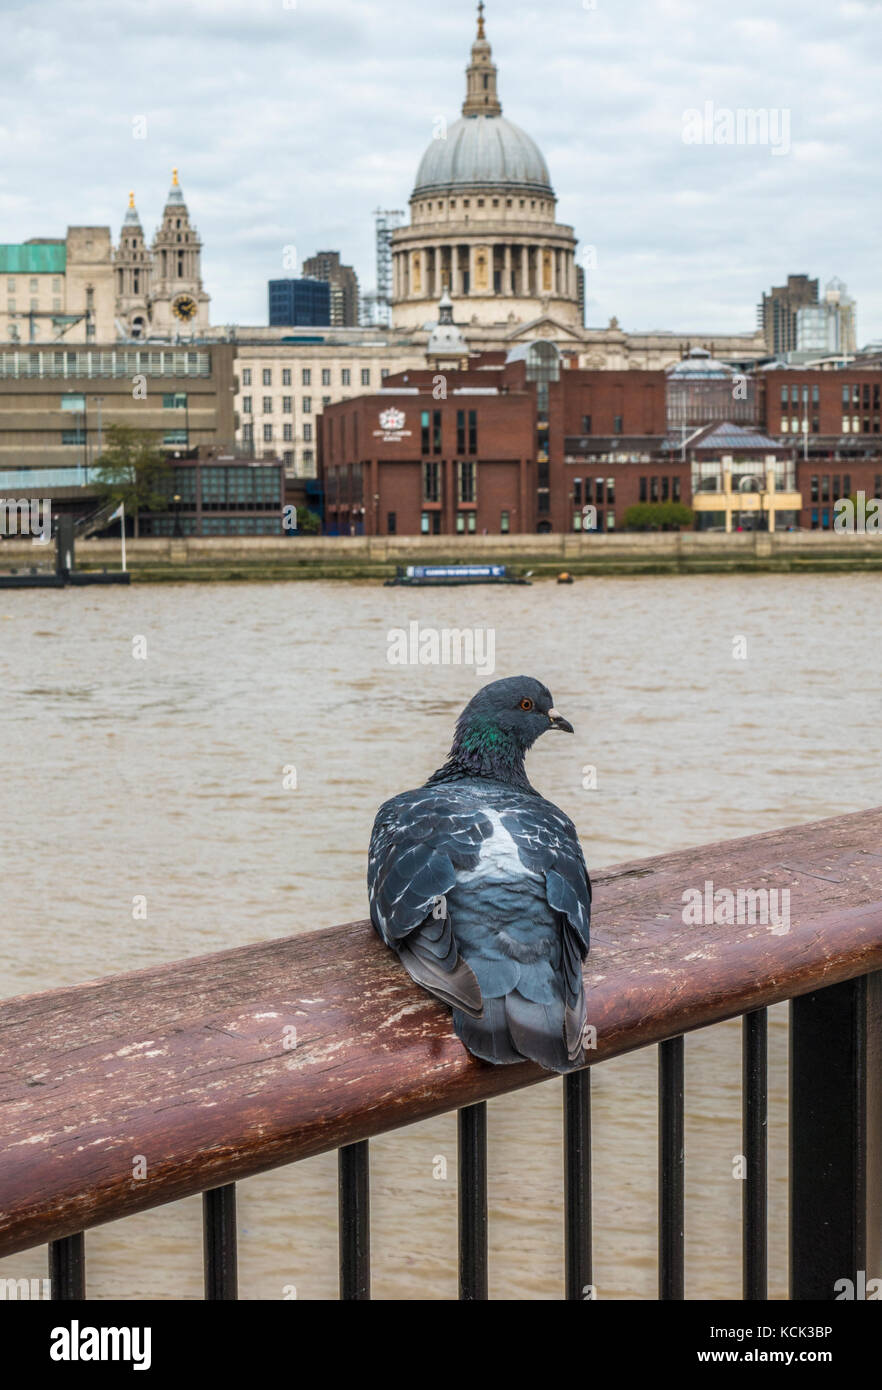 Close view of a feral pigeon (Columba livia domestica) on a handrail overlooking River Thames, with St Paul's - Stock Image